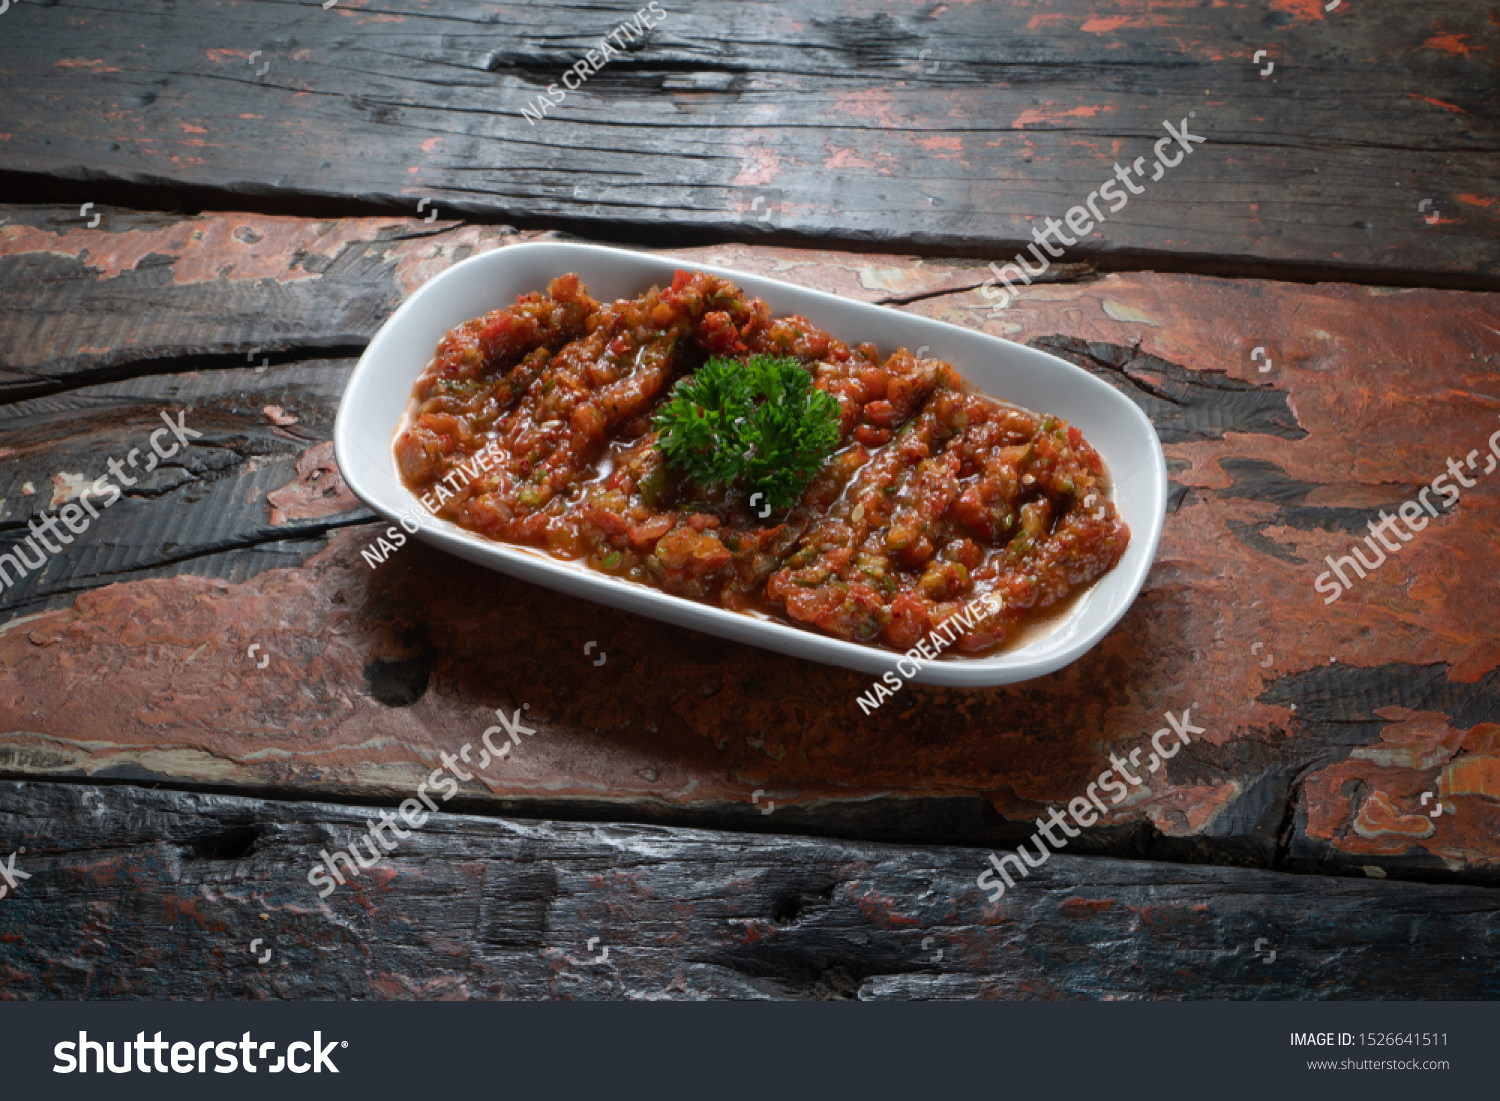 Acılı Ezme turkish meze acili ezme spicy paste stock photo (edit now